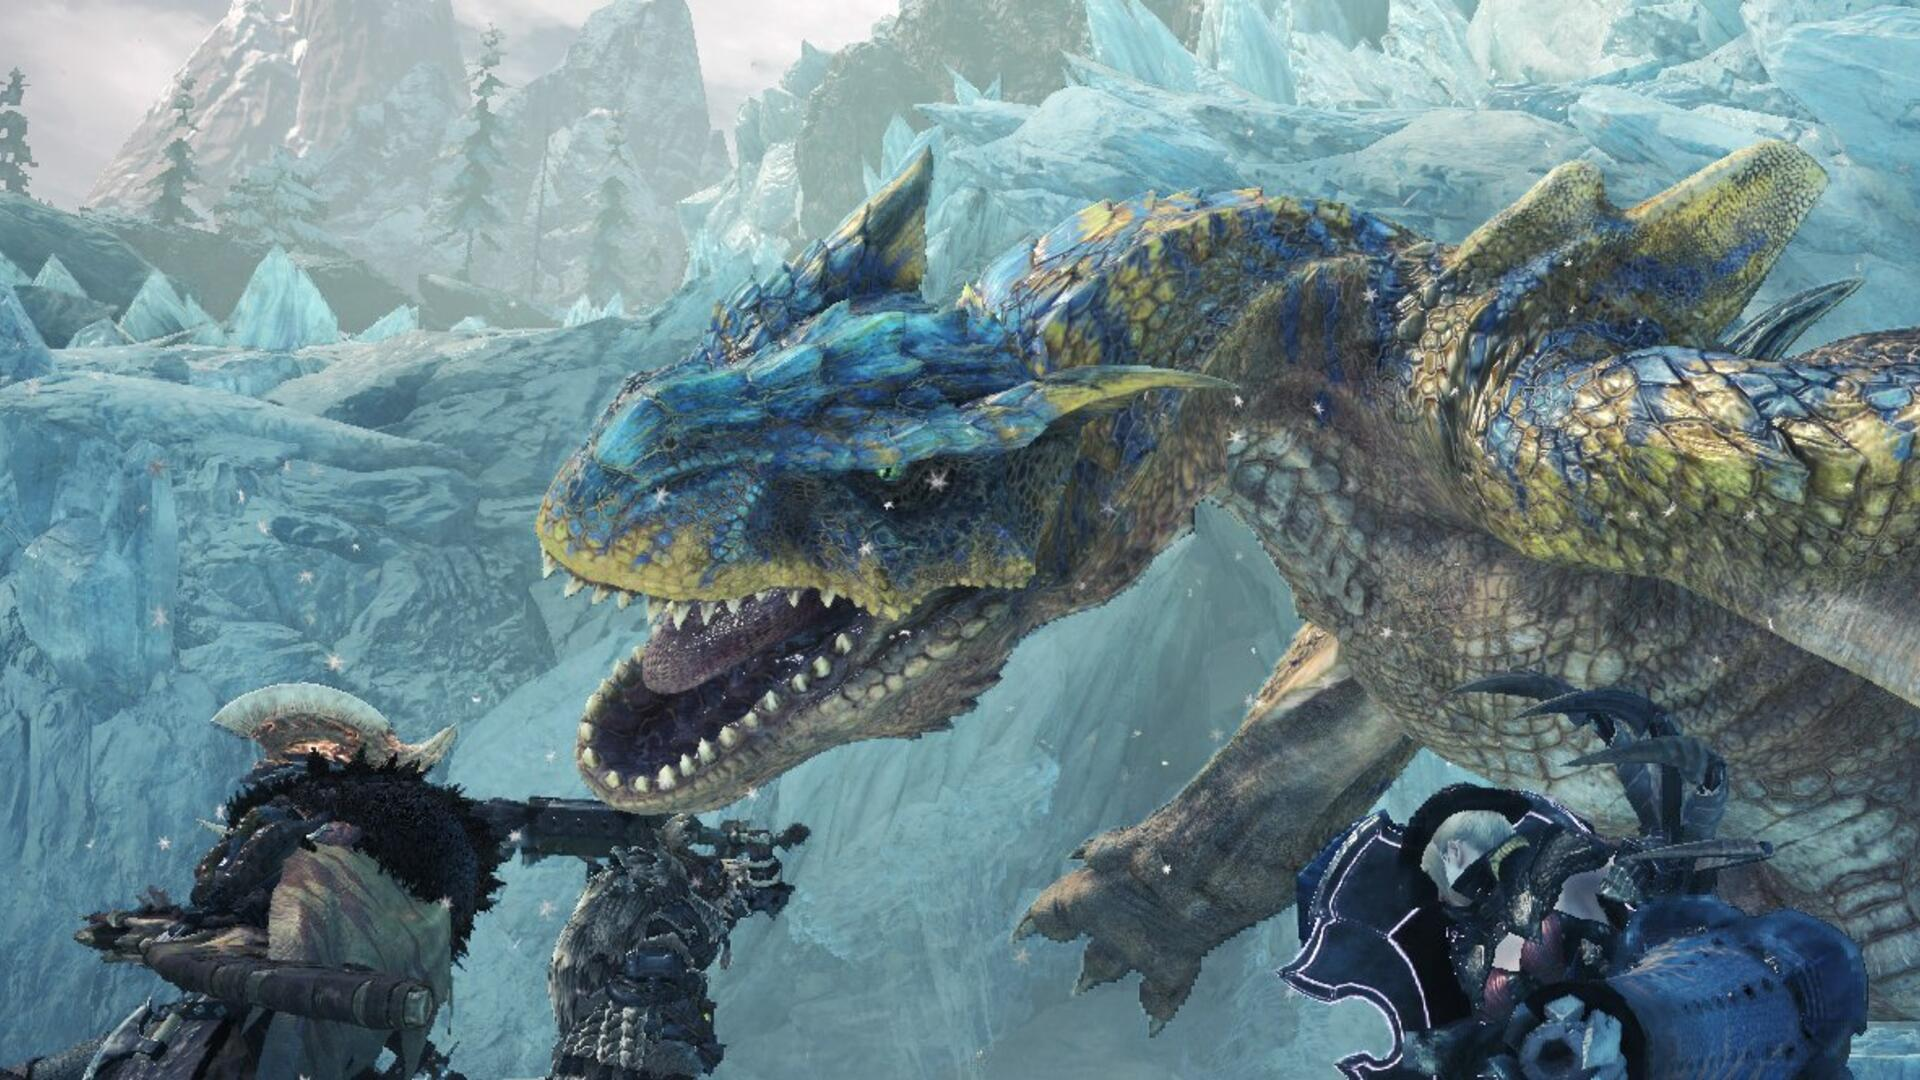 Monster Hunter World Tigrex Guide - How to Defeat the Tigrex in Iceborne